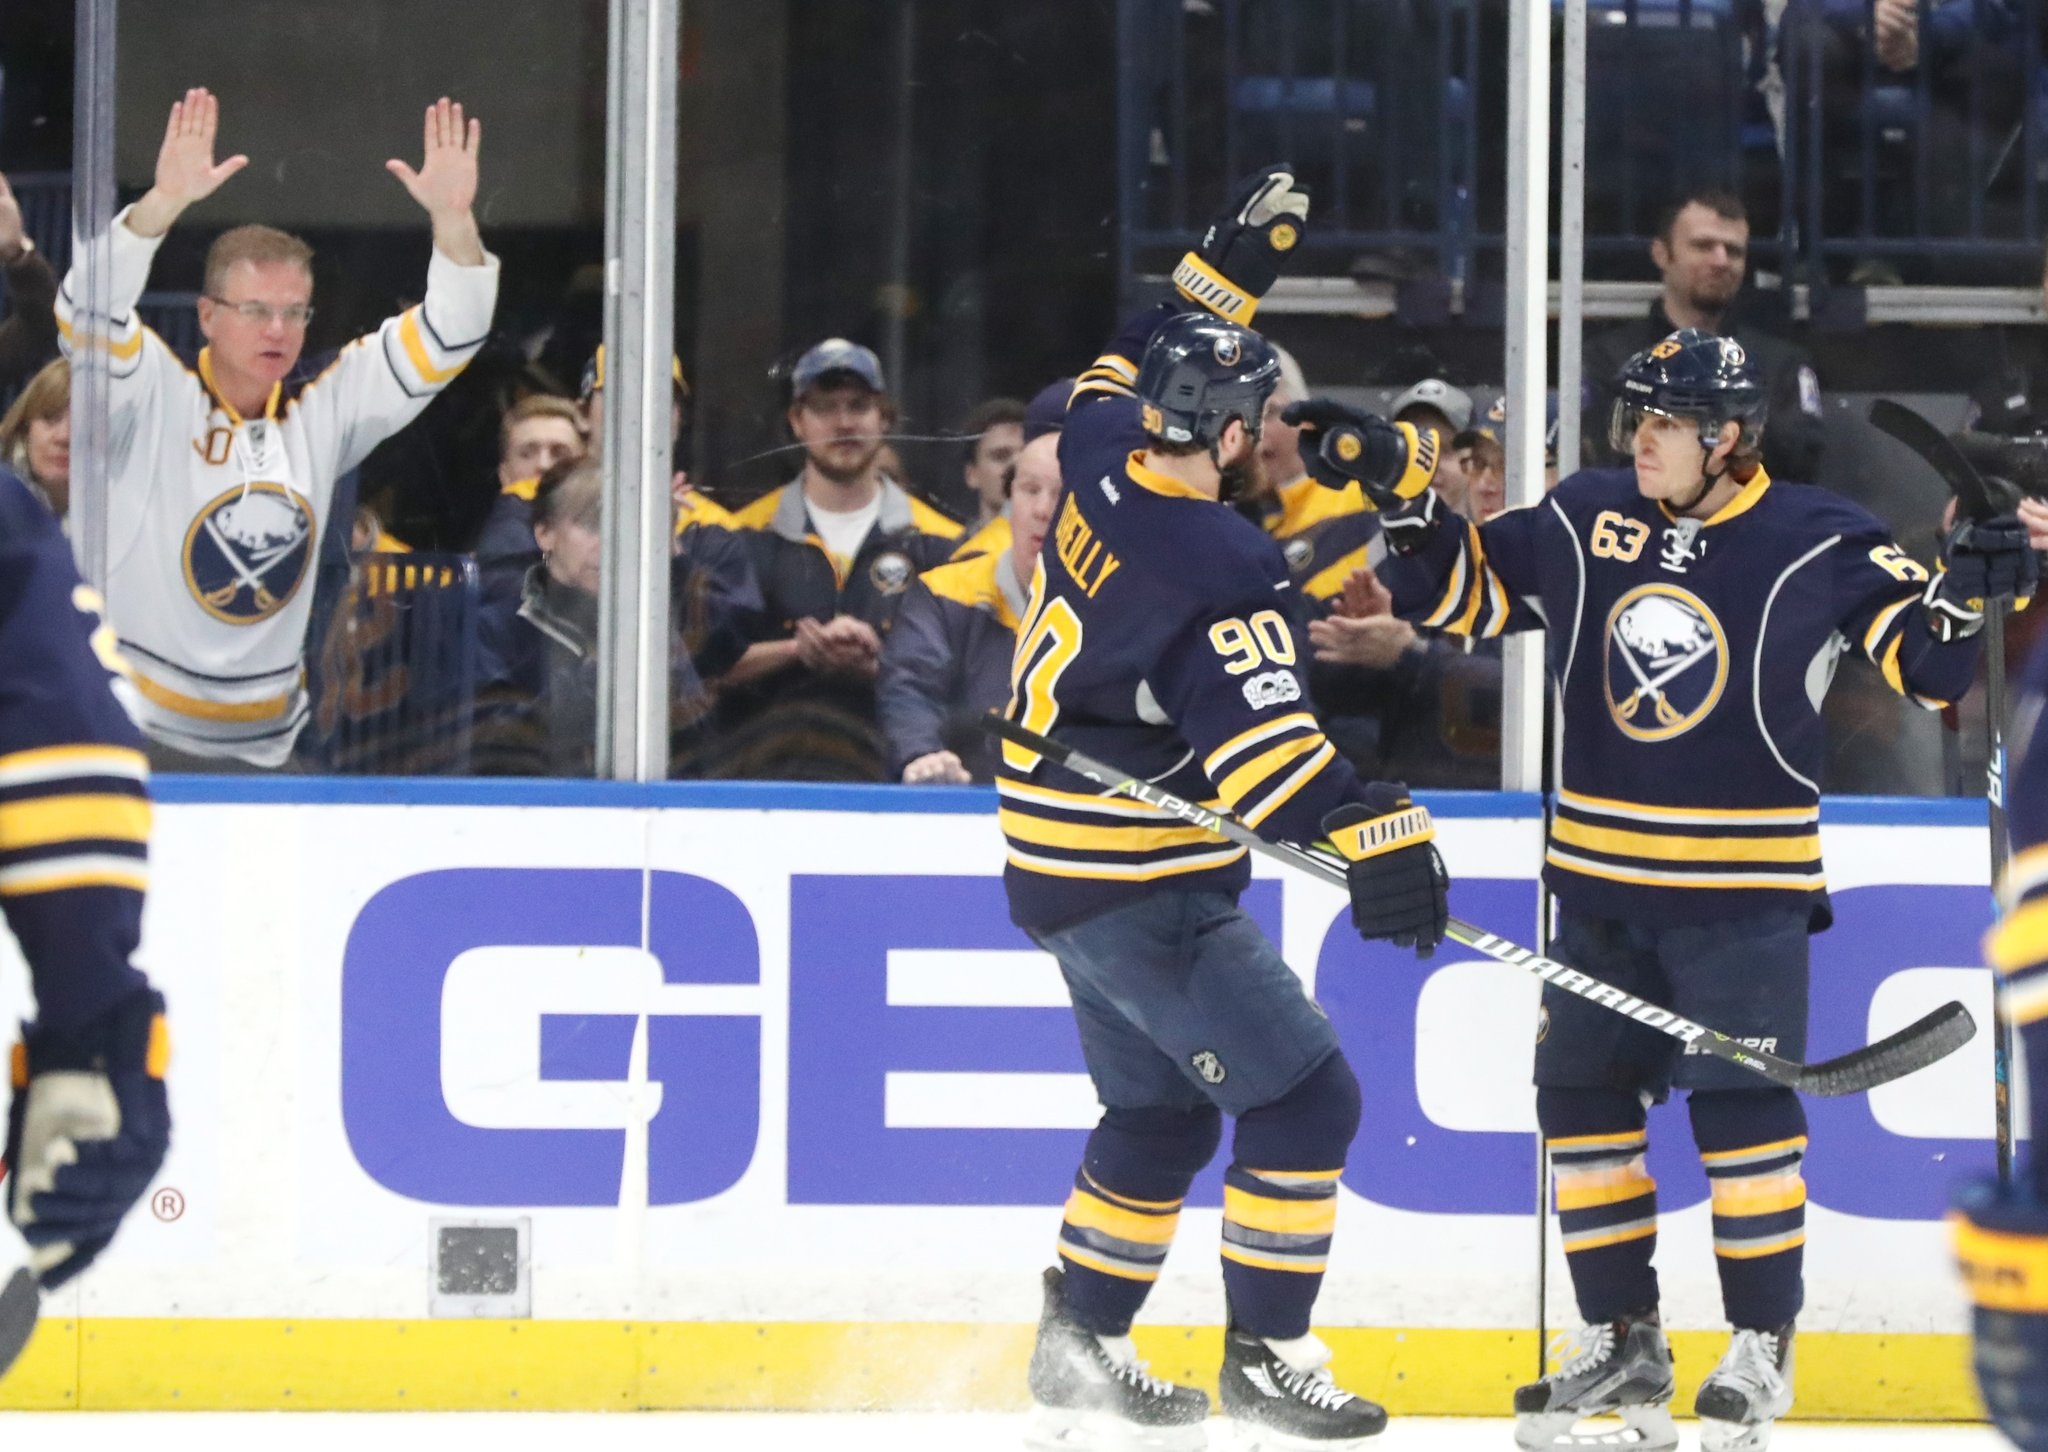 Ryan O'Reilly (90) and Tyler Ennis had multipoint nights for the Sabres. (James P. McCoy/Buffalo News)